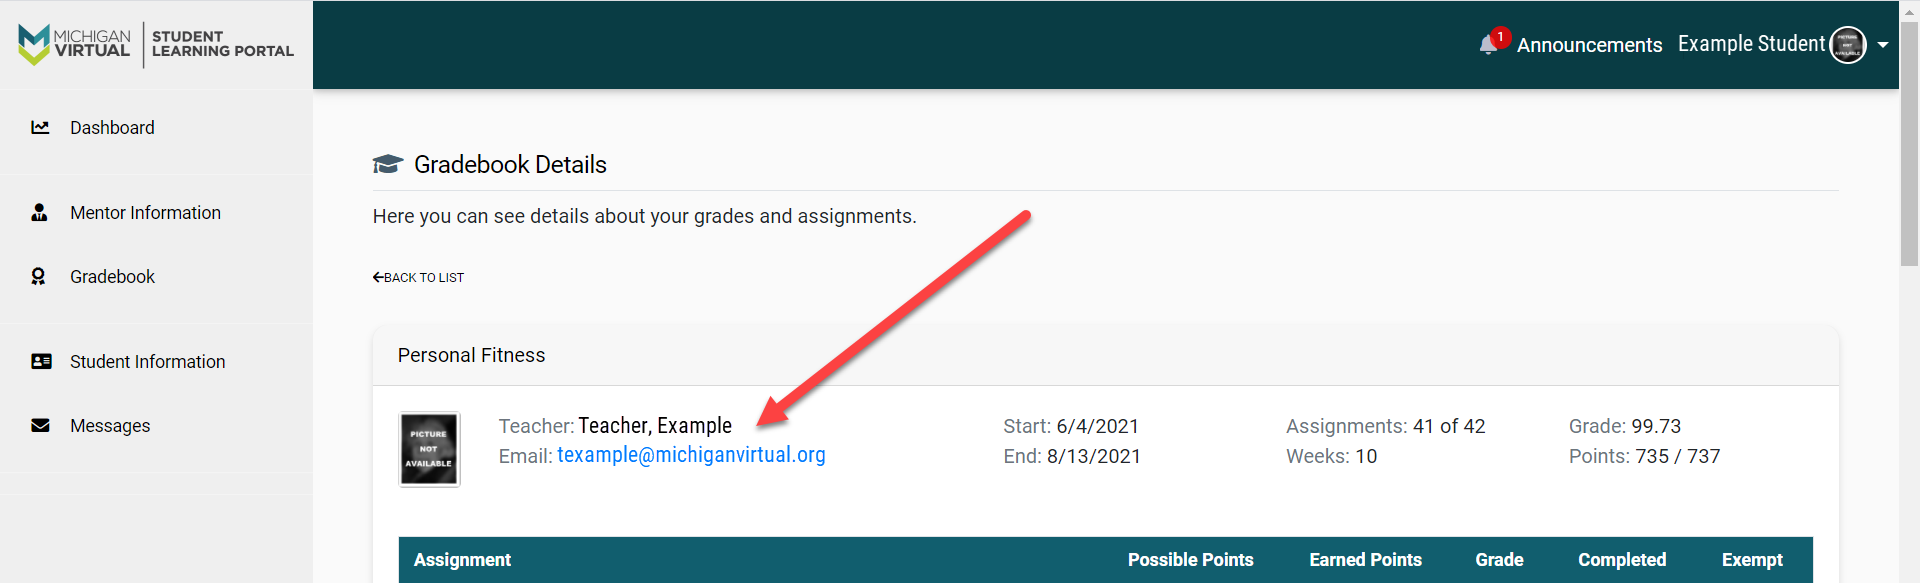 The View Details page is shown with an arrow pointing to the Instructor/Teacher name and email above the assignment details section.